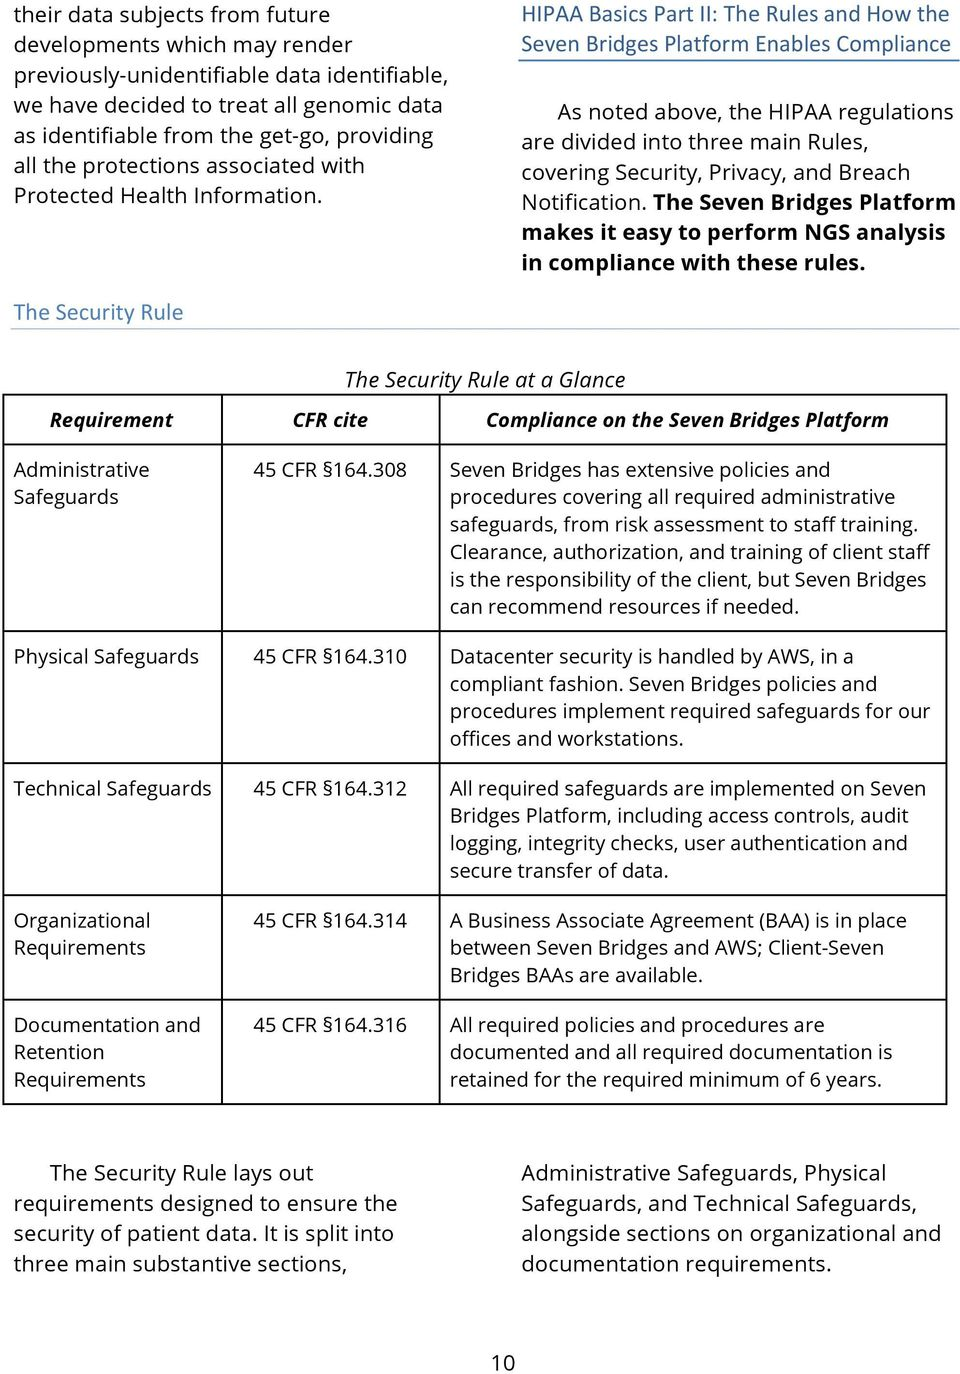 HIPAA Basics Part II: The Rules and How the Seven Bridges Platform Enables Compliance As noted above, the HIPAA regulations are divided into three main Rules, covering Security, Privacy, and Breach